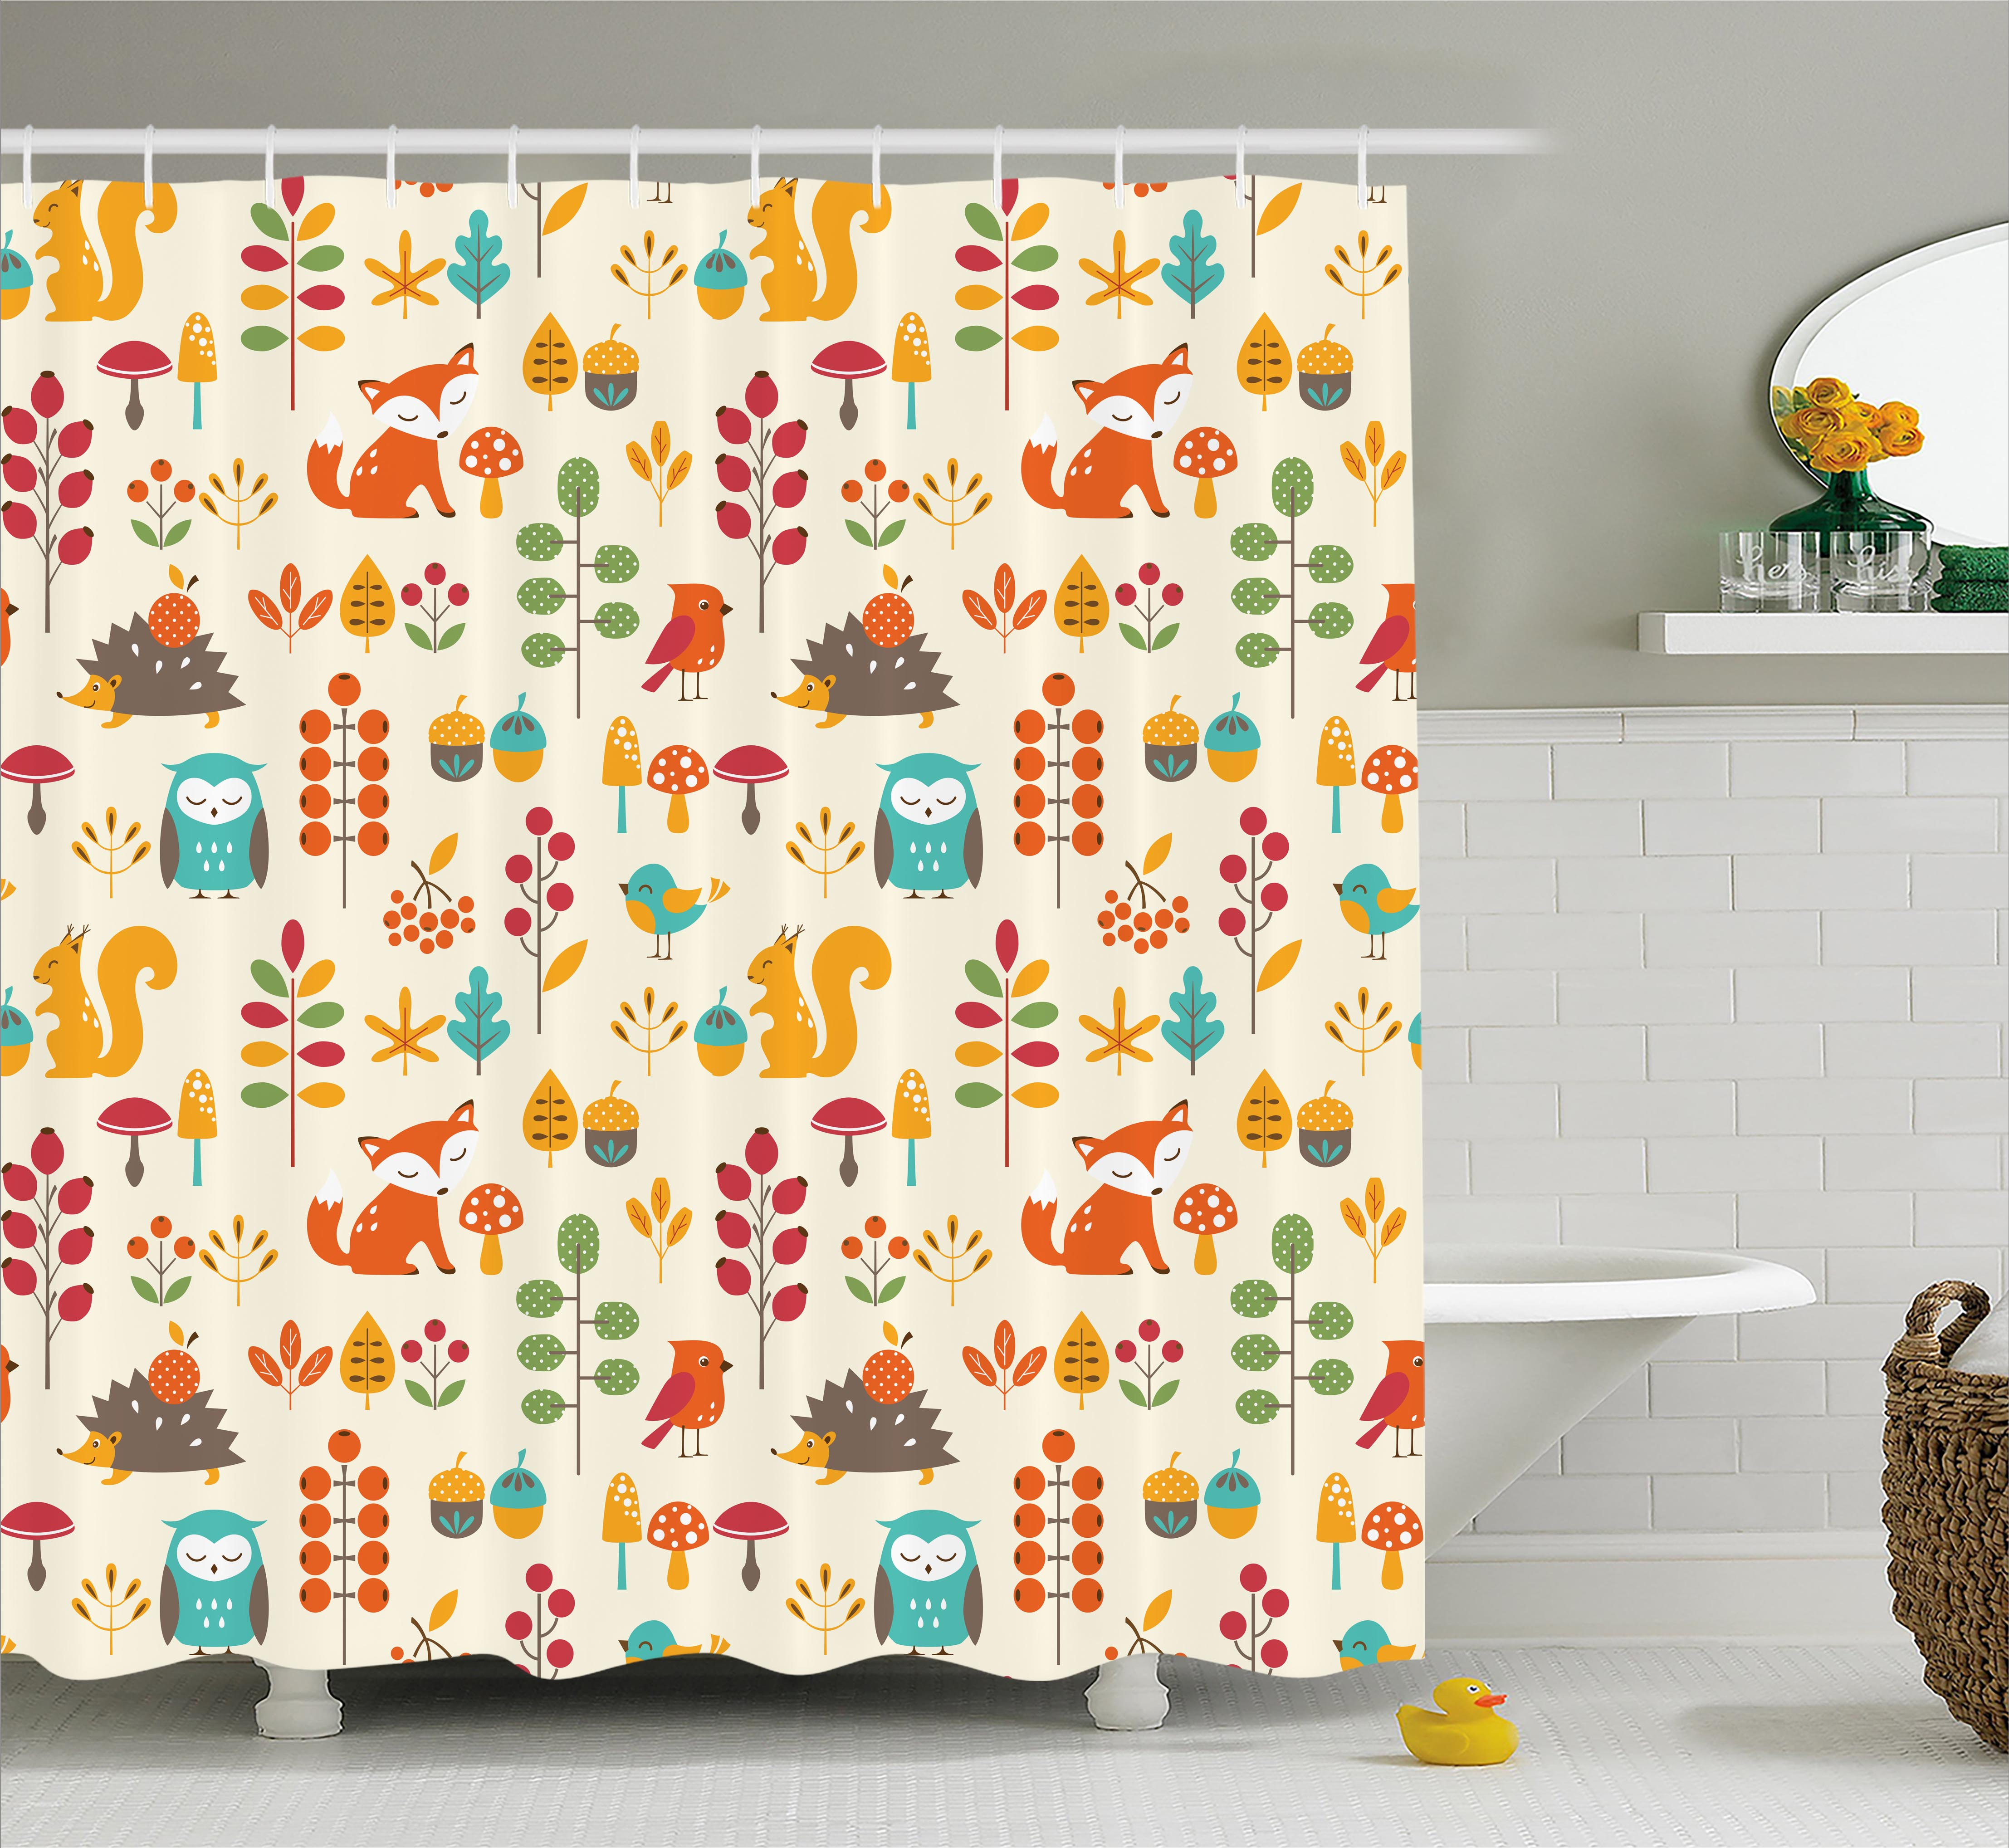 Children Shower Curtain, Cute Kids Autumn Pattern with Owl Fox Squirrel Birds Animal Leaves Artsy Print, Fabric Bathroom Set with Hooks, 69W X 70L Inches, Multicolor, by Ambesonne